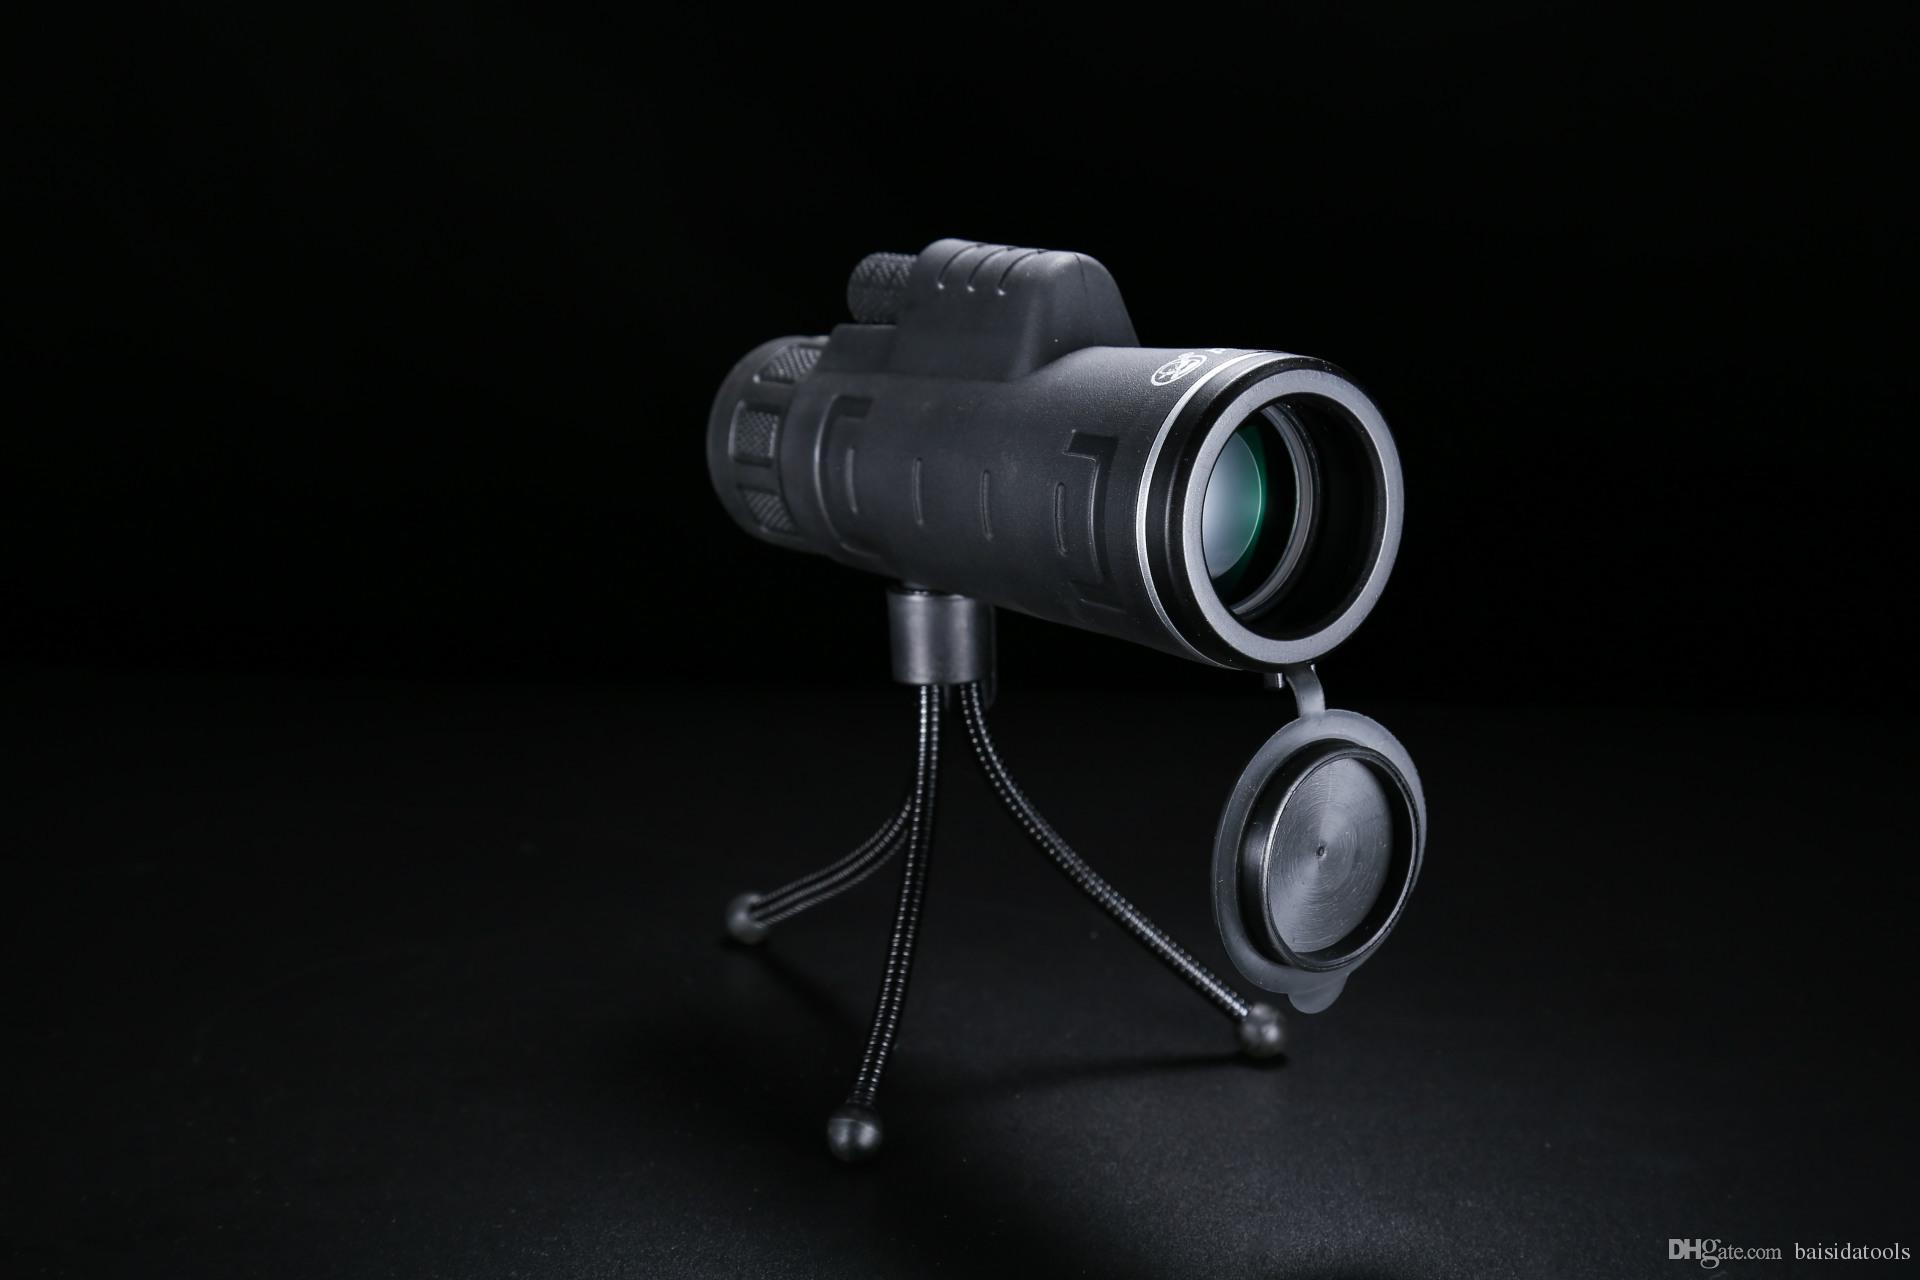 Monocular telescope times low light level night vision